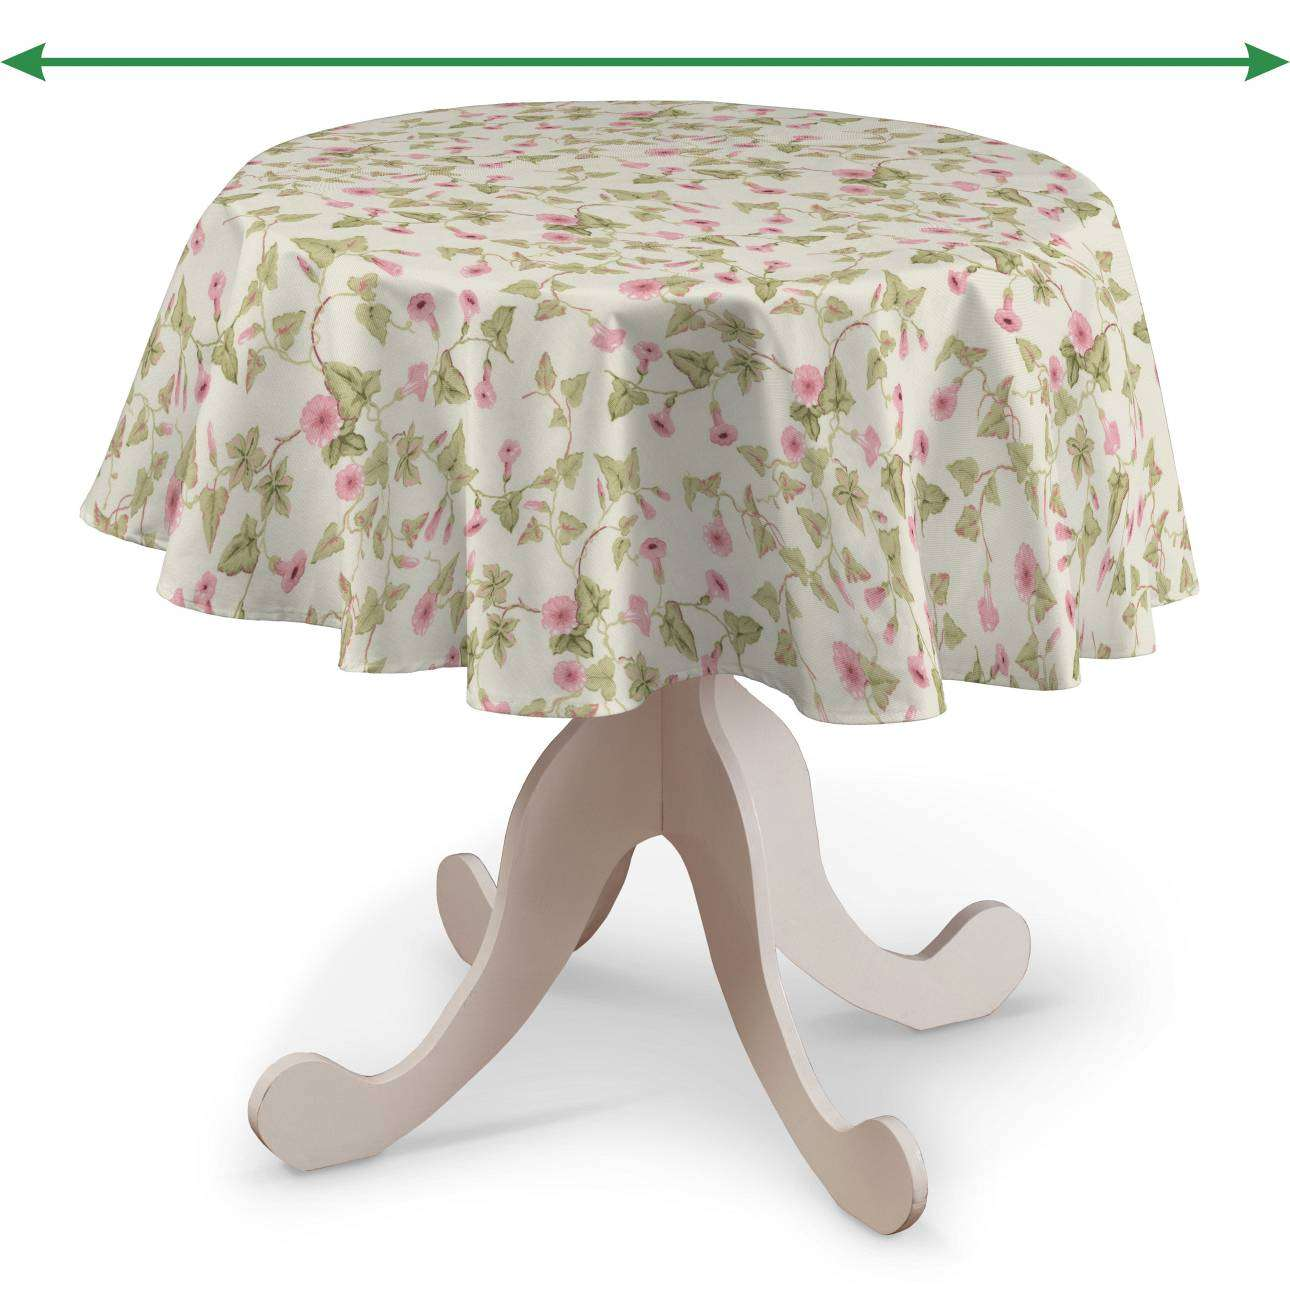 Round tablecloth in collection Londres, fabric: 140-41